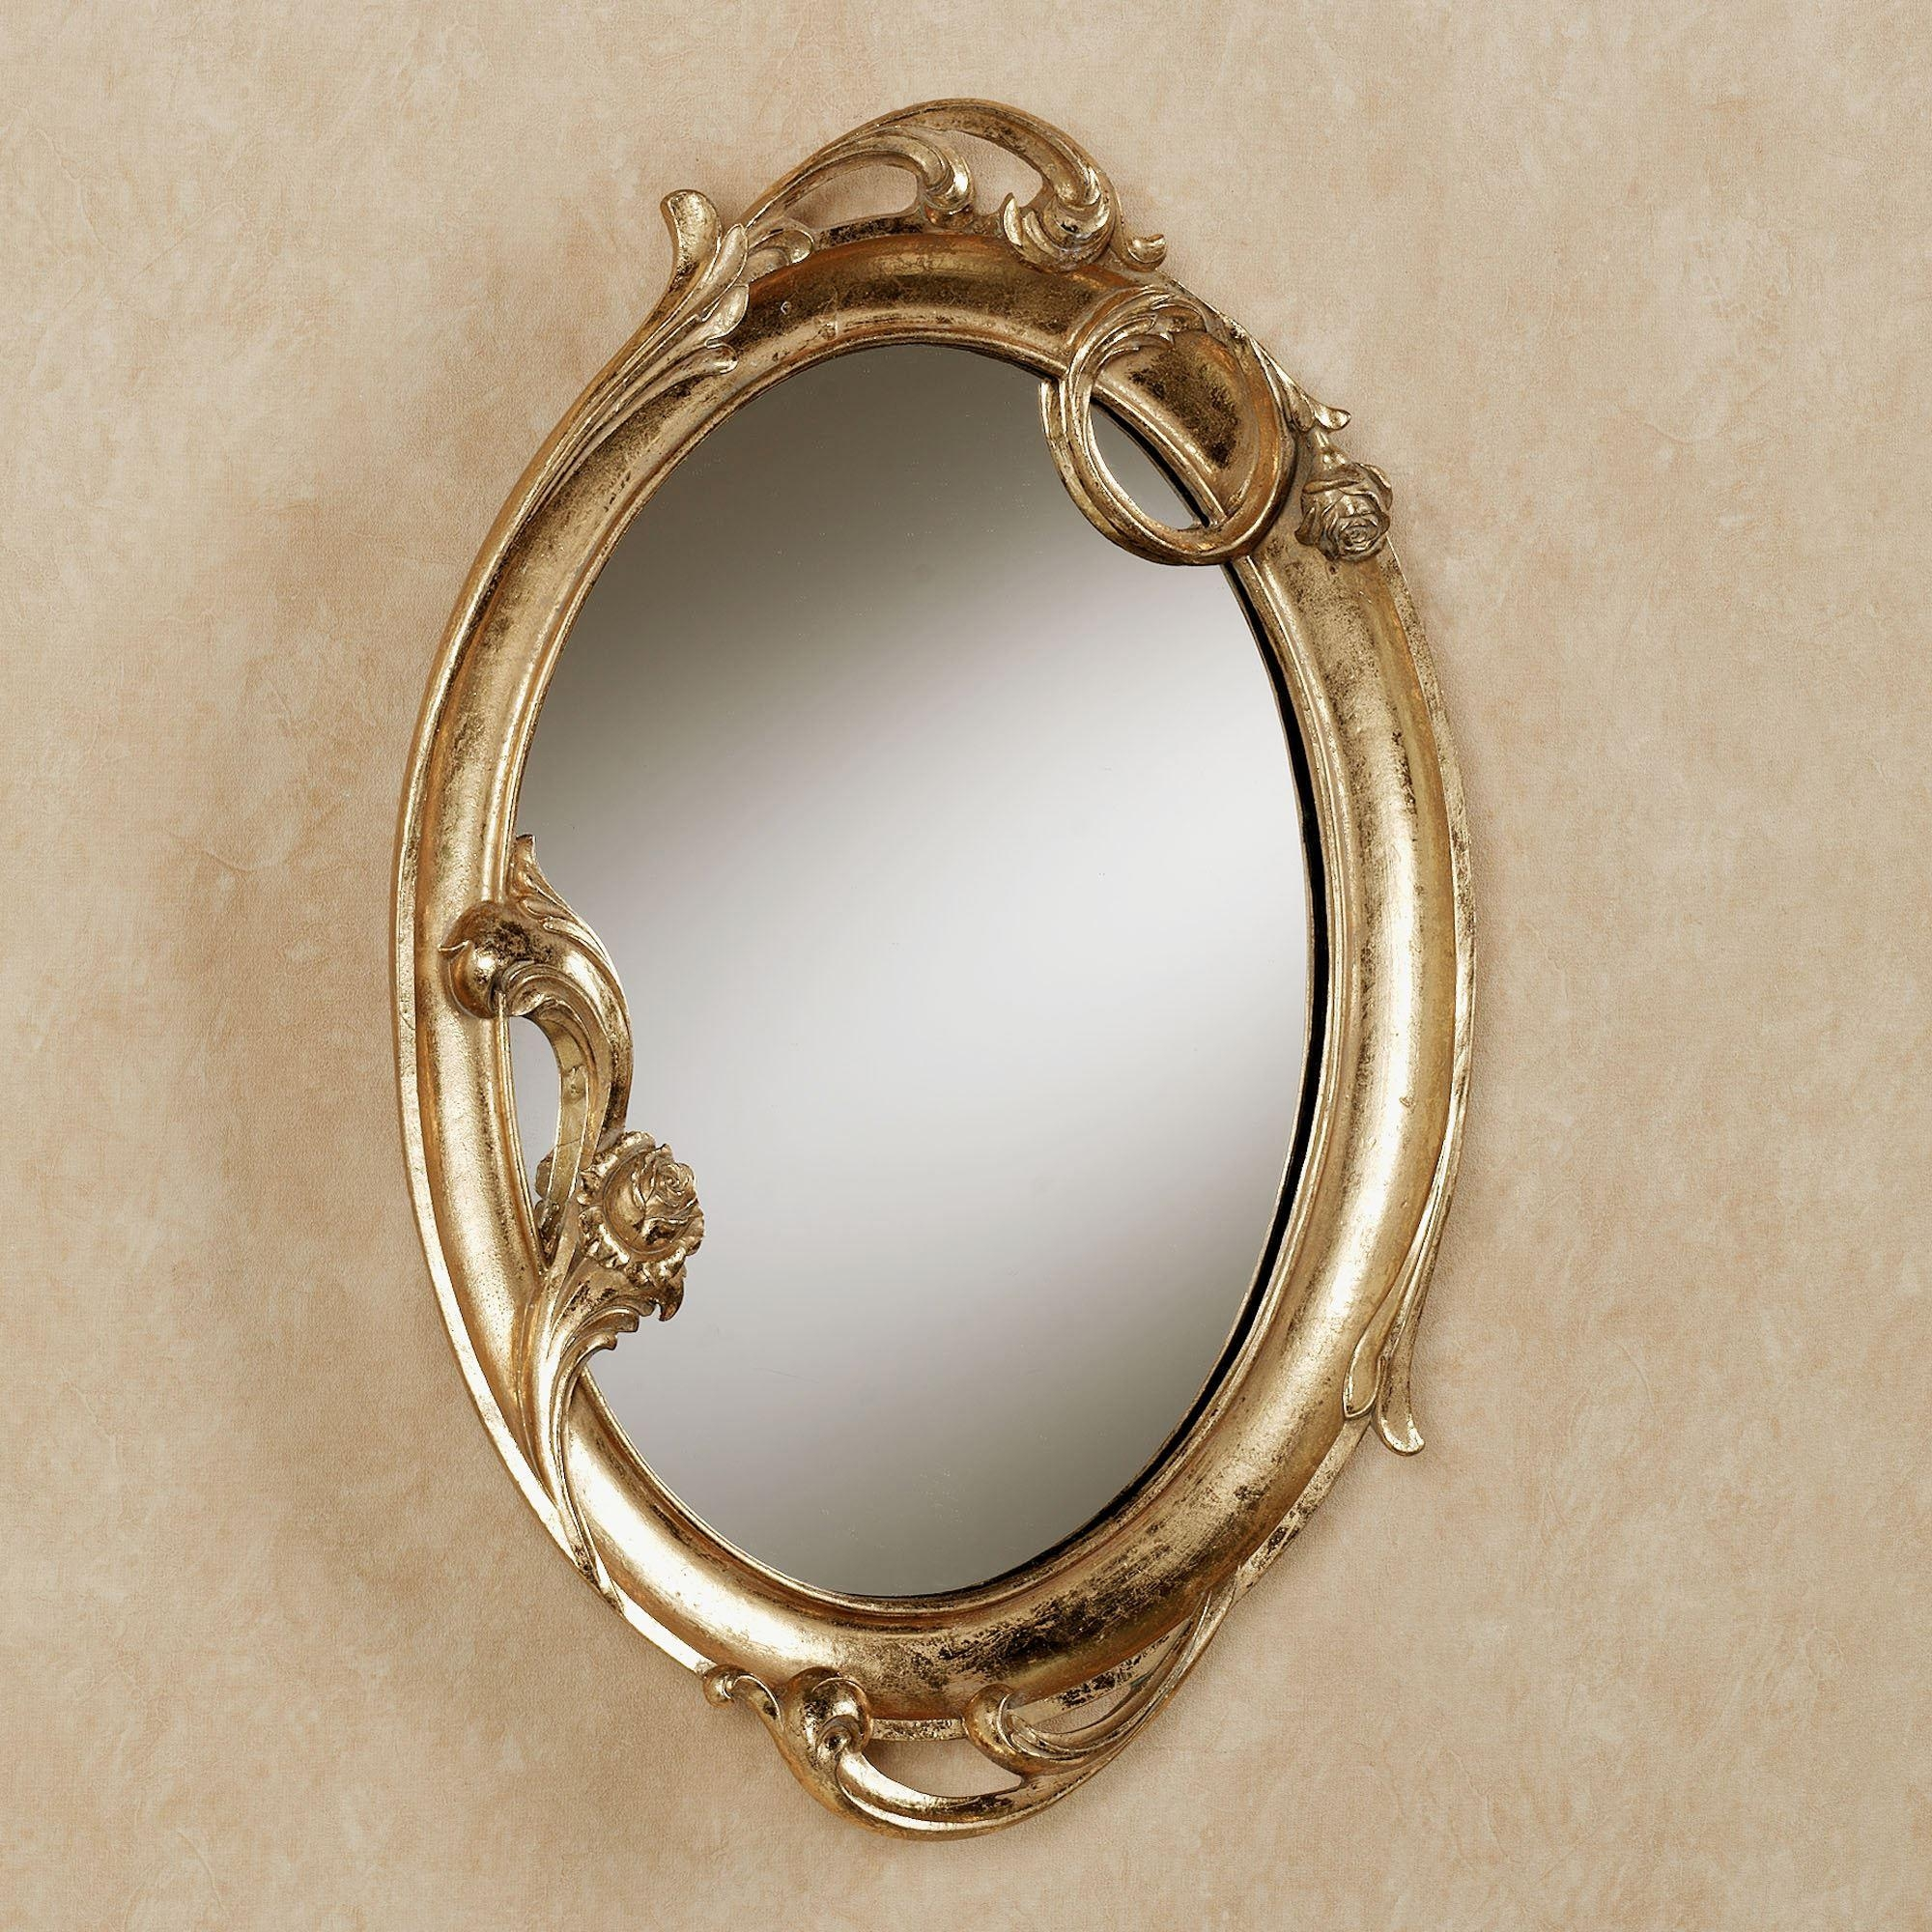 Art Nouveau Gold Oval Wall Mirror With Regard To Art Nouveau Wall Mirror (Image 8 of 20)